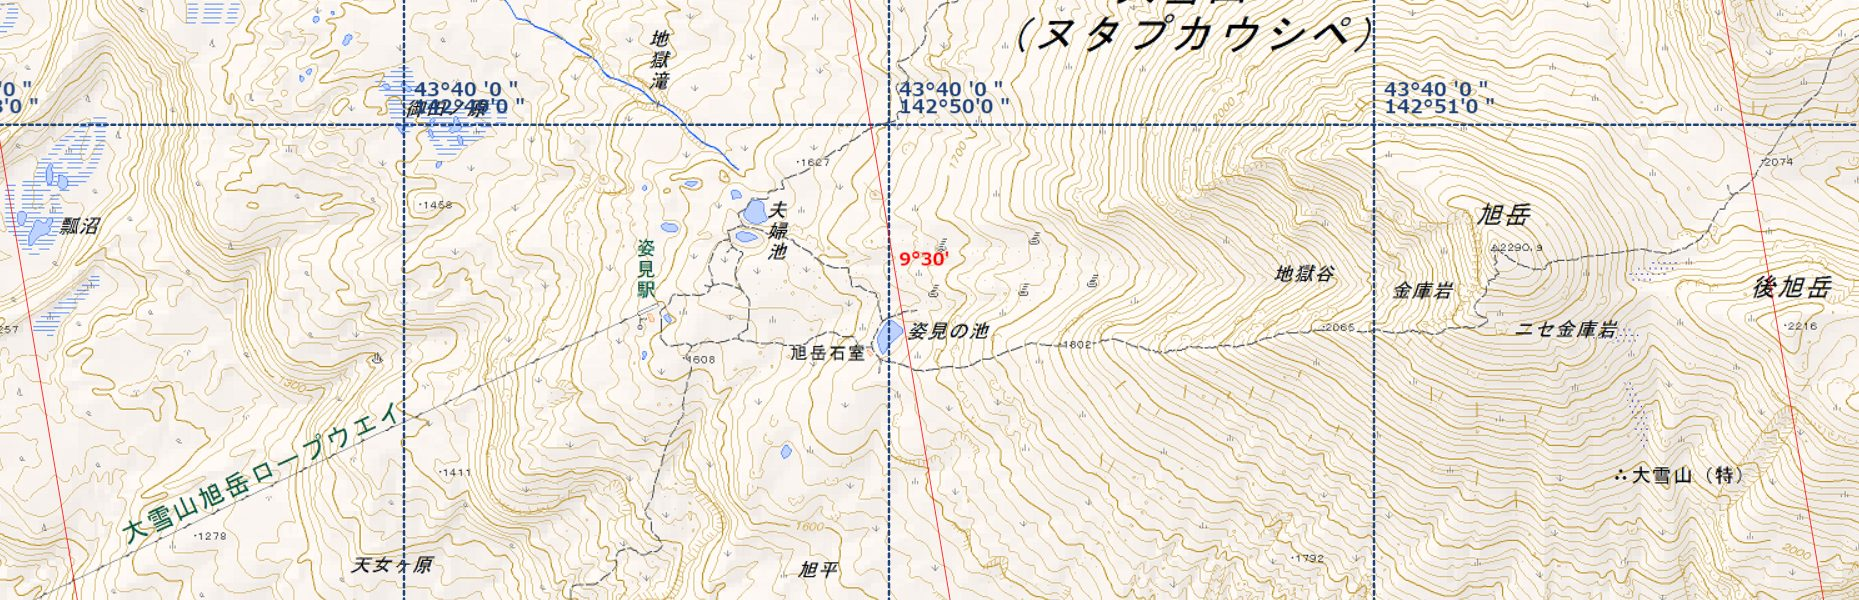 Android And IPhone Apps For Displaying Japan Topographical Maps In - Topo maps app for iphone